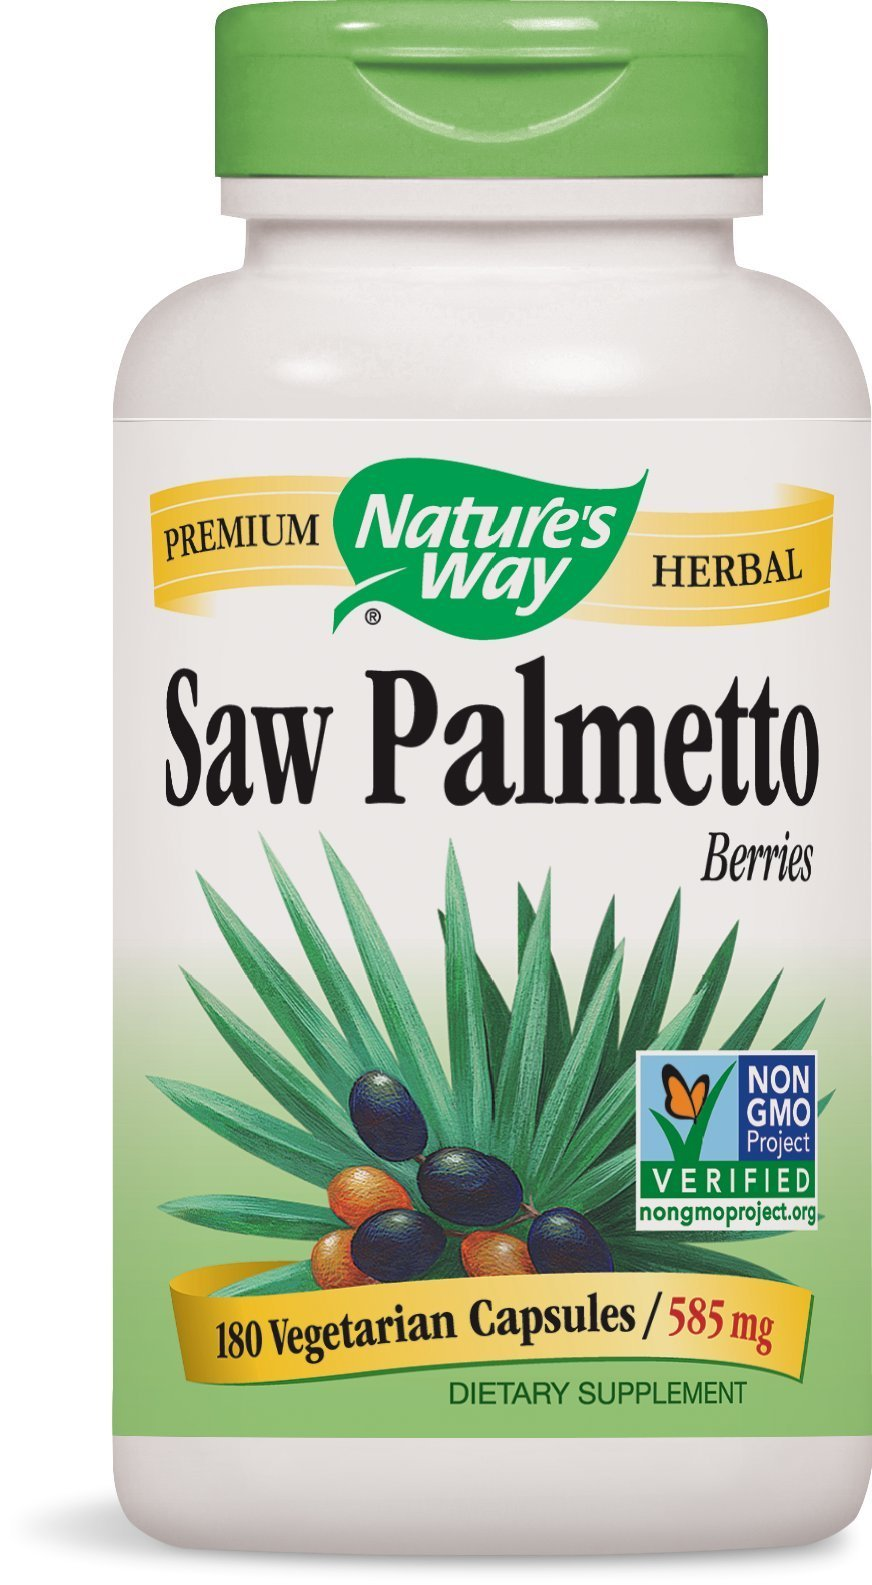 Nature's Way Saw Palmetto Berries; 585 mg Saw Palmetto Berries per serving; Non-GMO Project Verified; TRU-ID Certified; Gluten-Free; Vegetarian; 180 Capsules